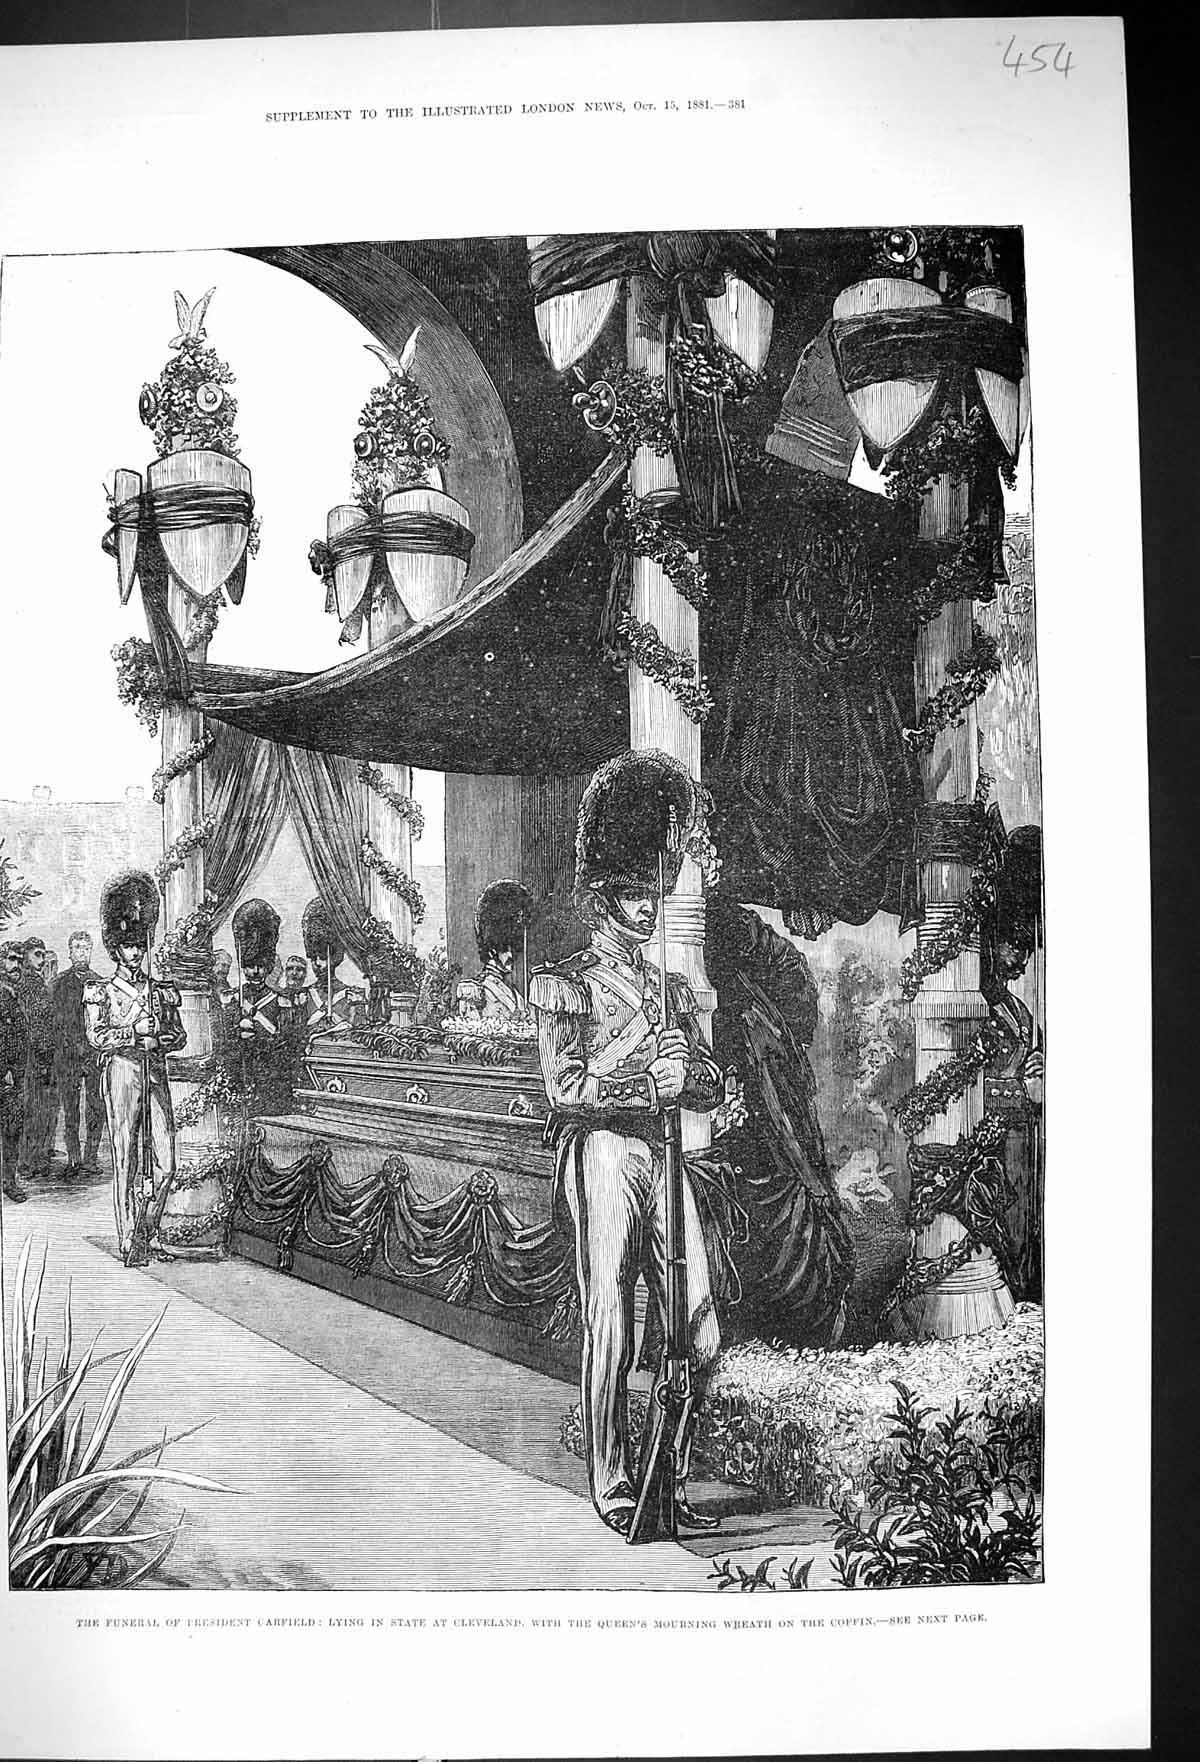 Old-1881-Funeral-President-Garfield-Lying-State-Cleveland-Queen-Wreat-Victorian